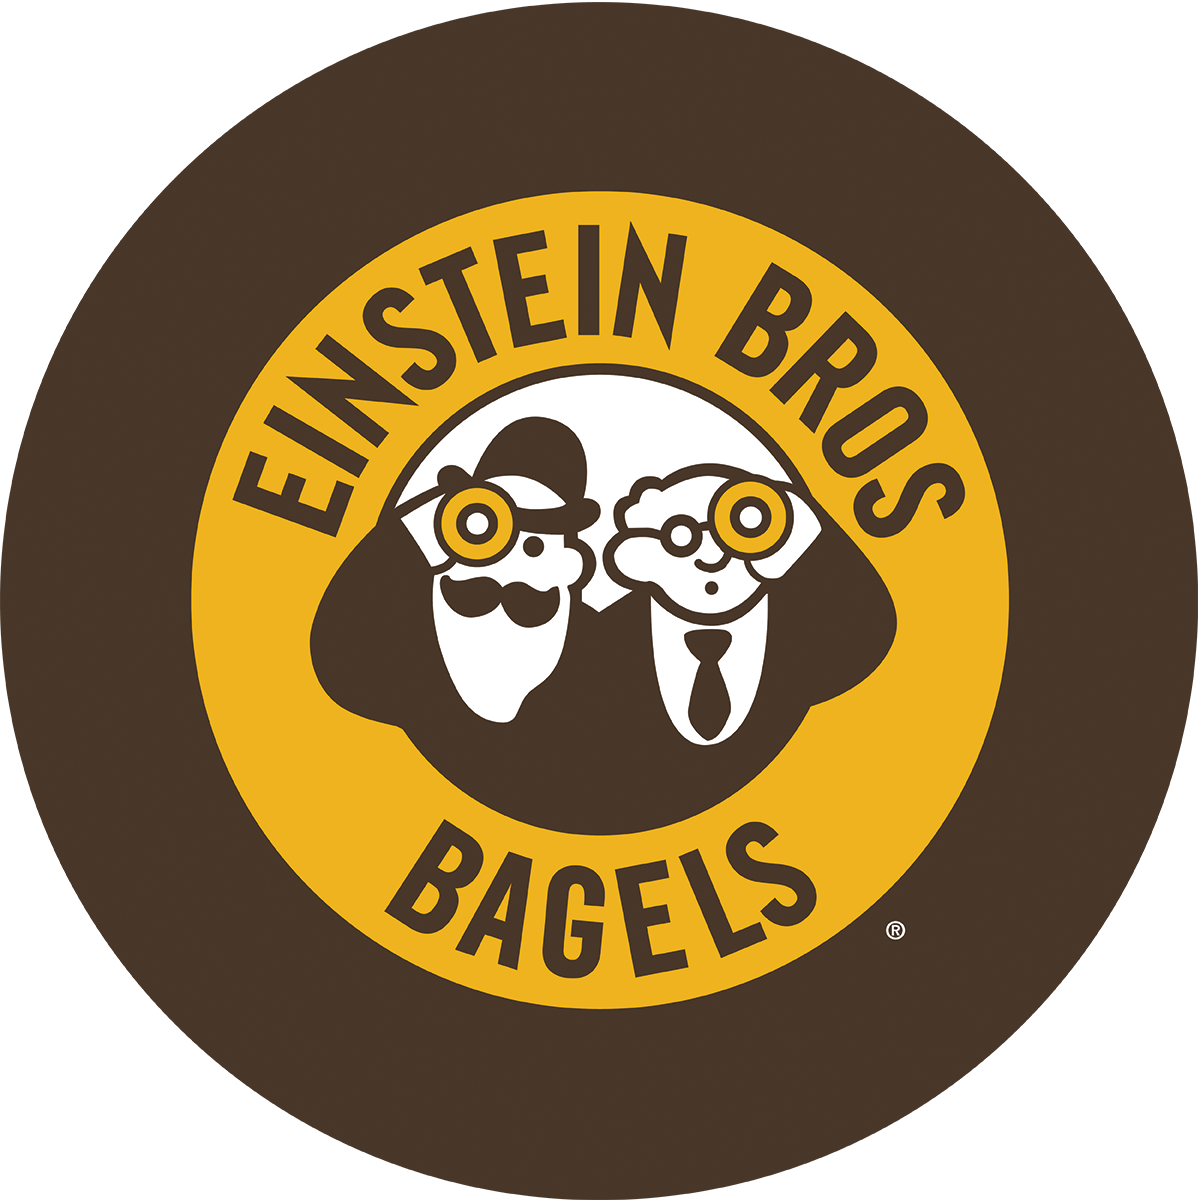 Einstein Bros. Bagels - North Canton, OH - Restaurants